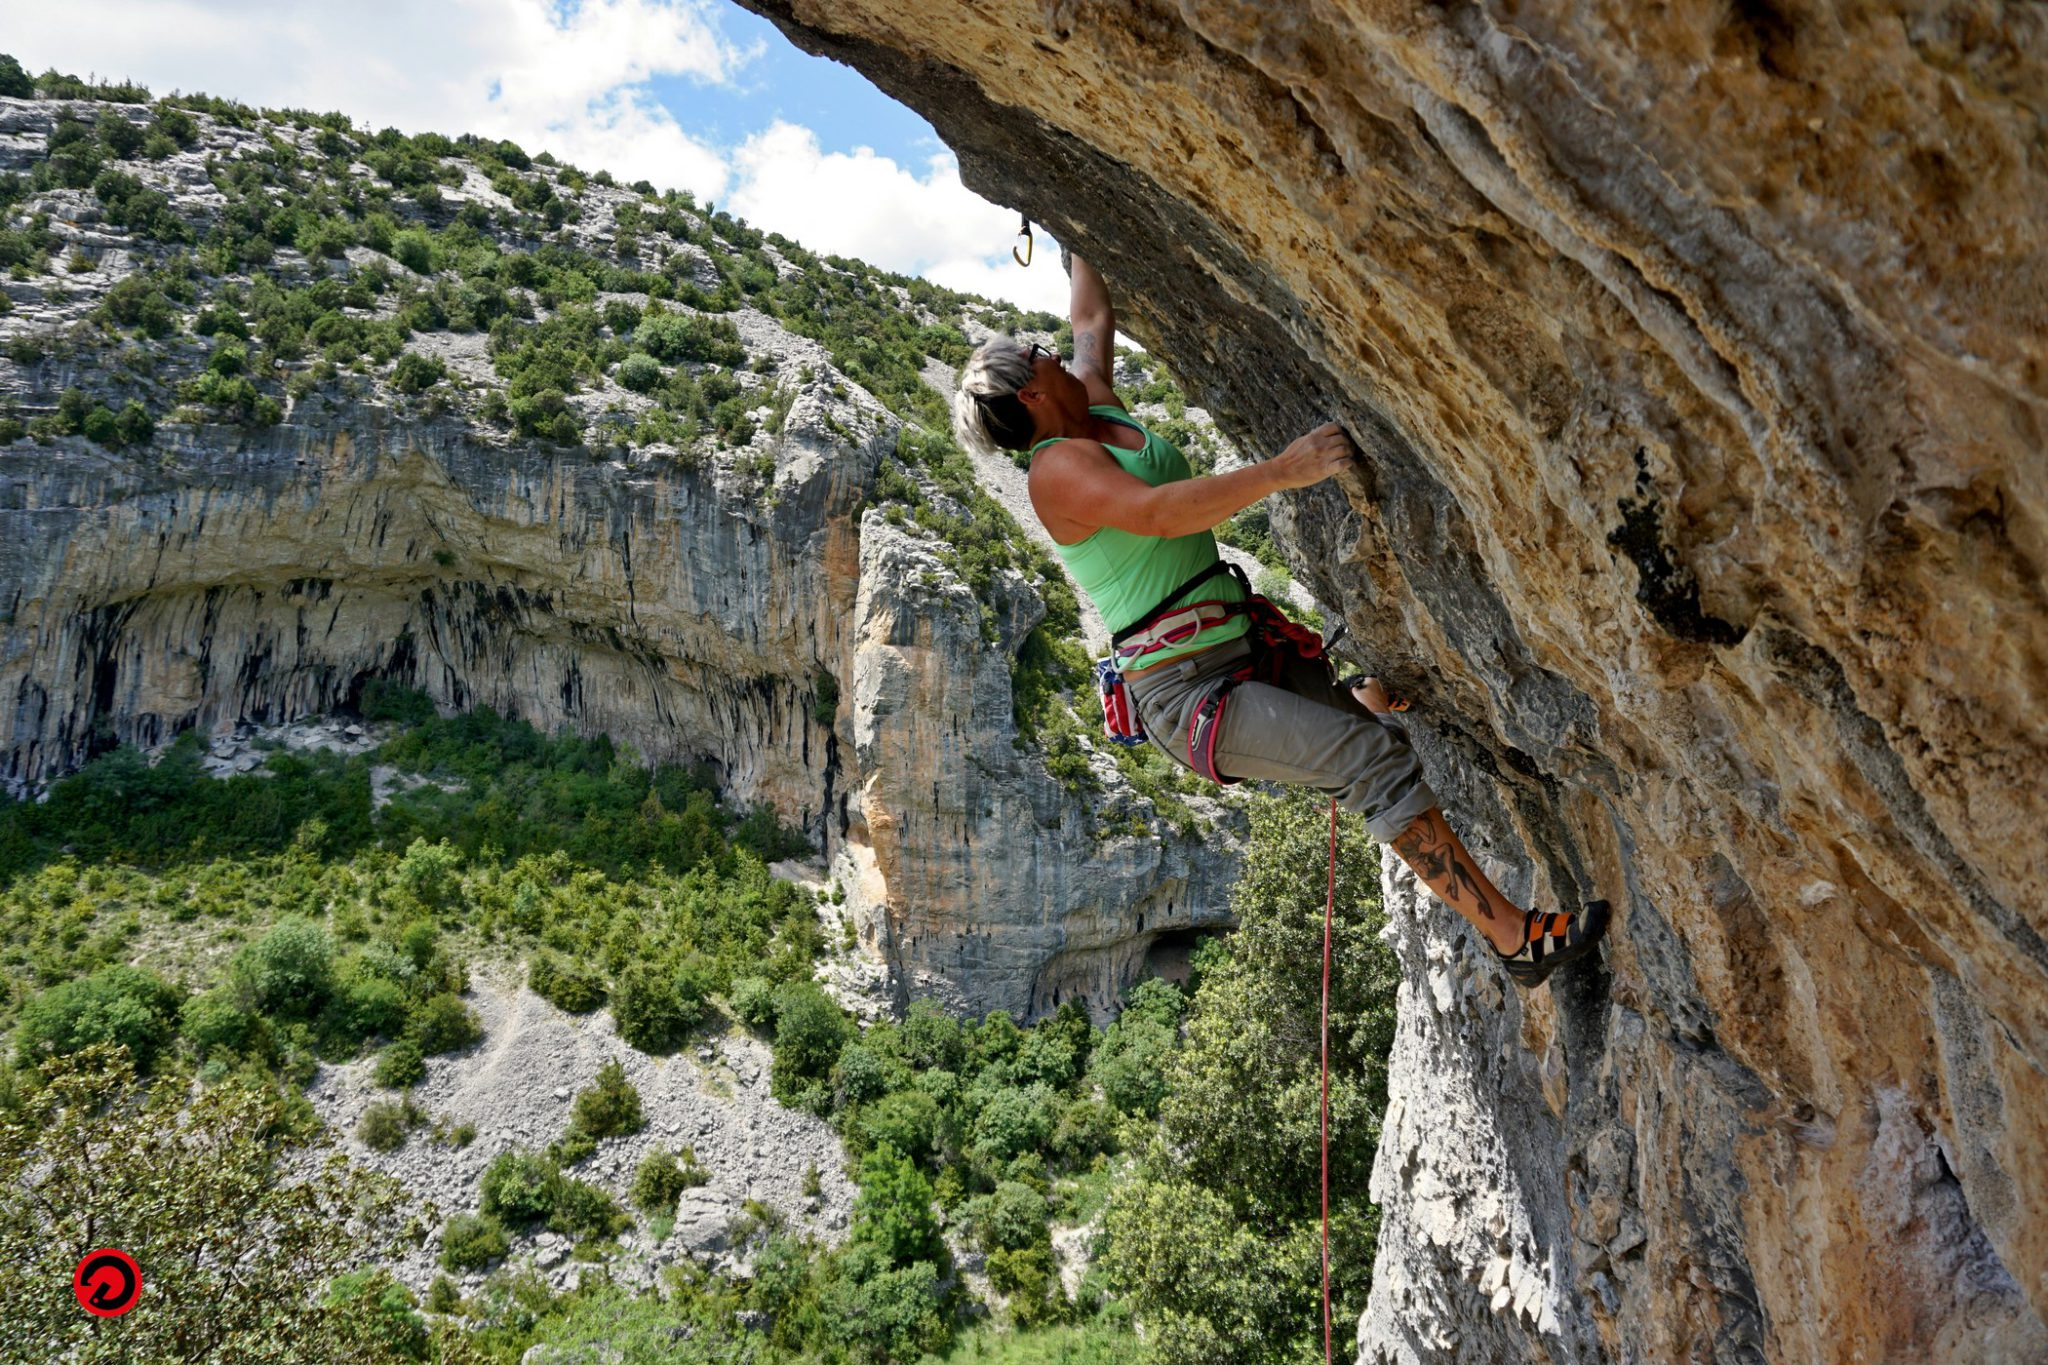 Female only climbing camp in Spain: Siurana rock climbing holiday